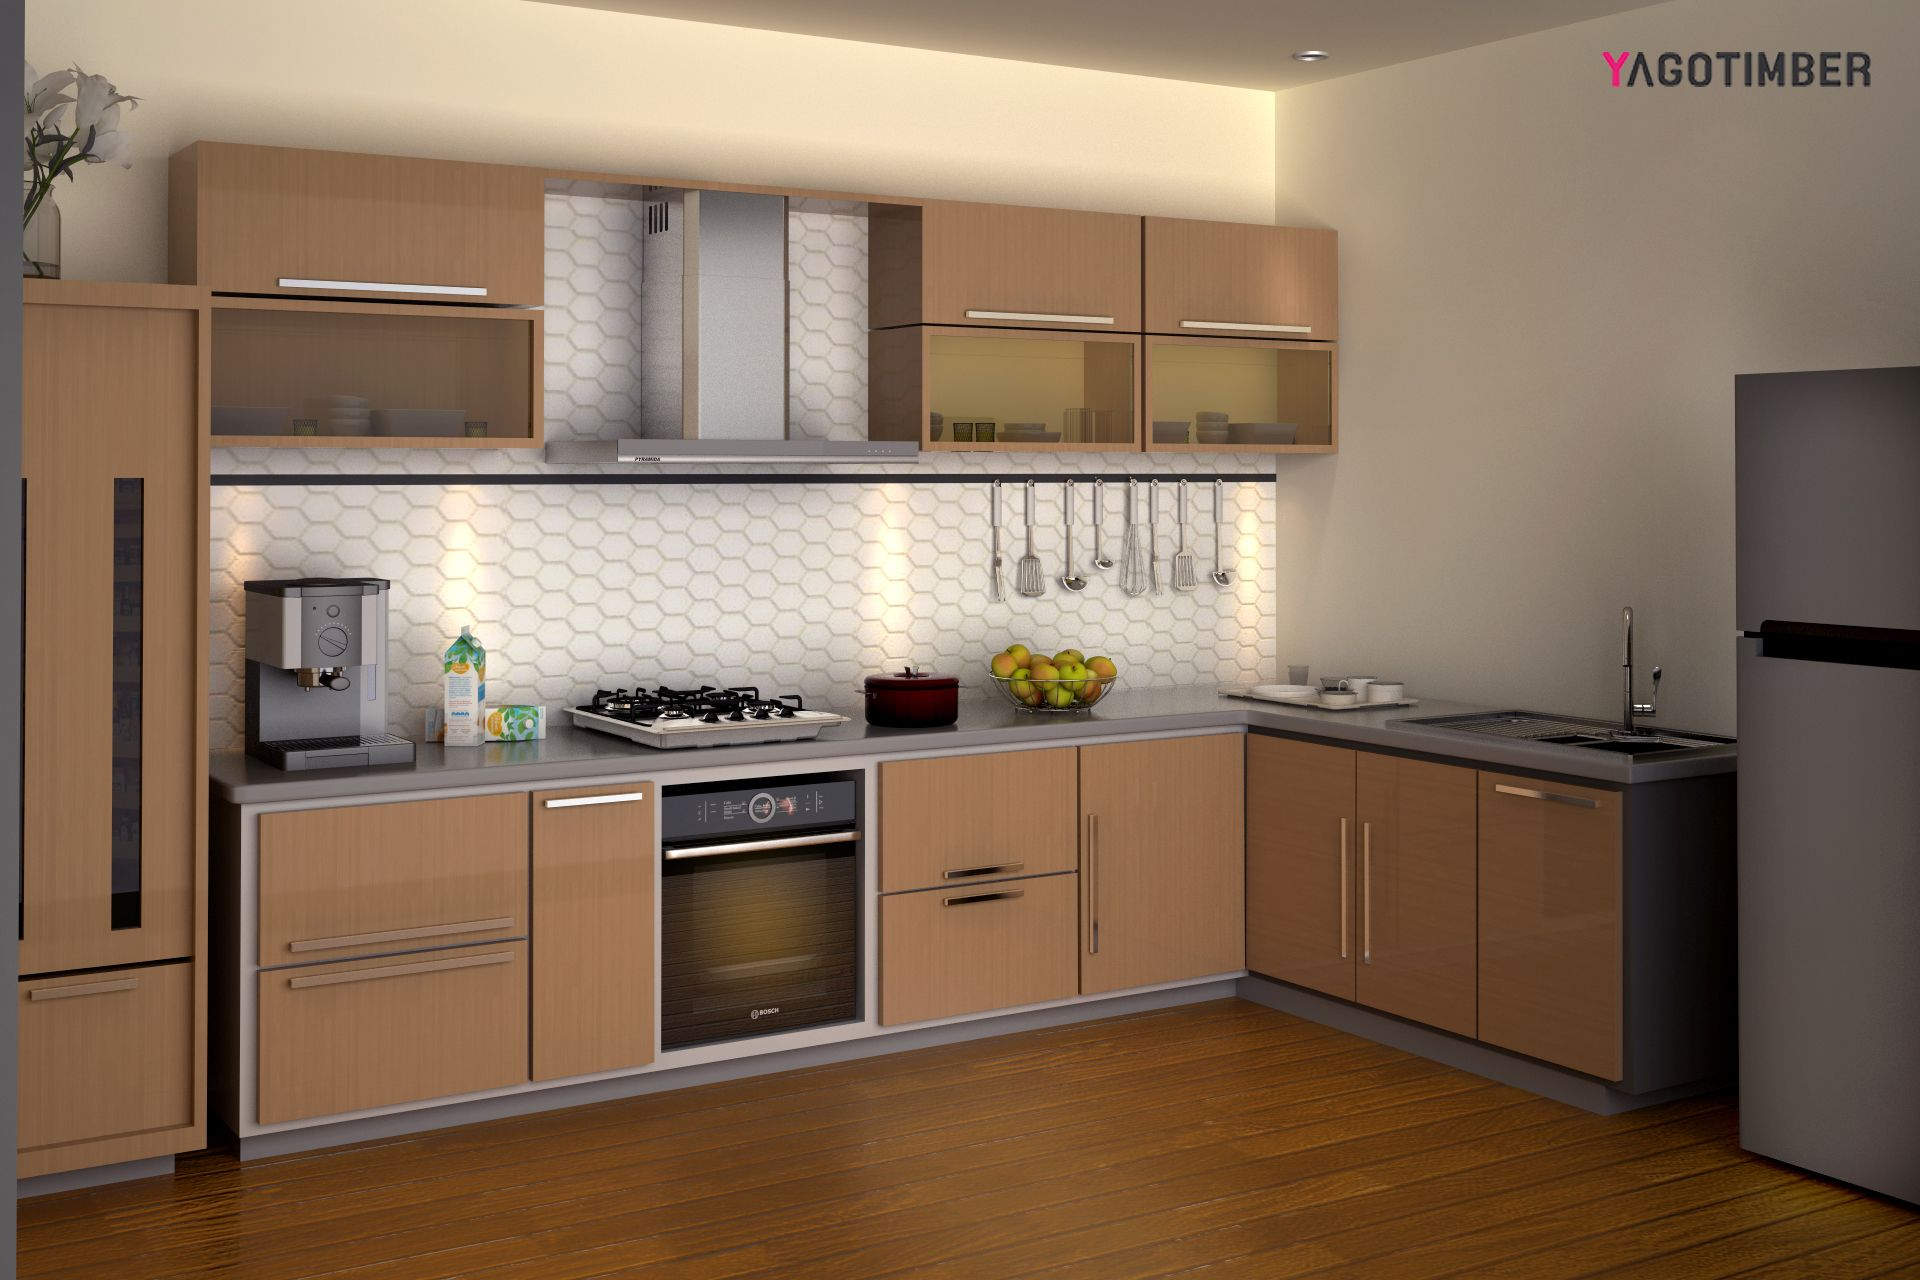 ModularKitchen #InteriorDesign & #Kitchen Designer in #delhi